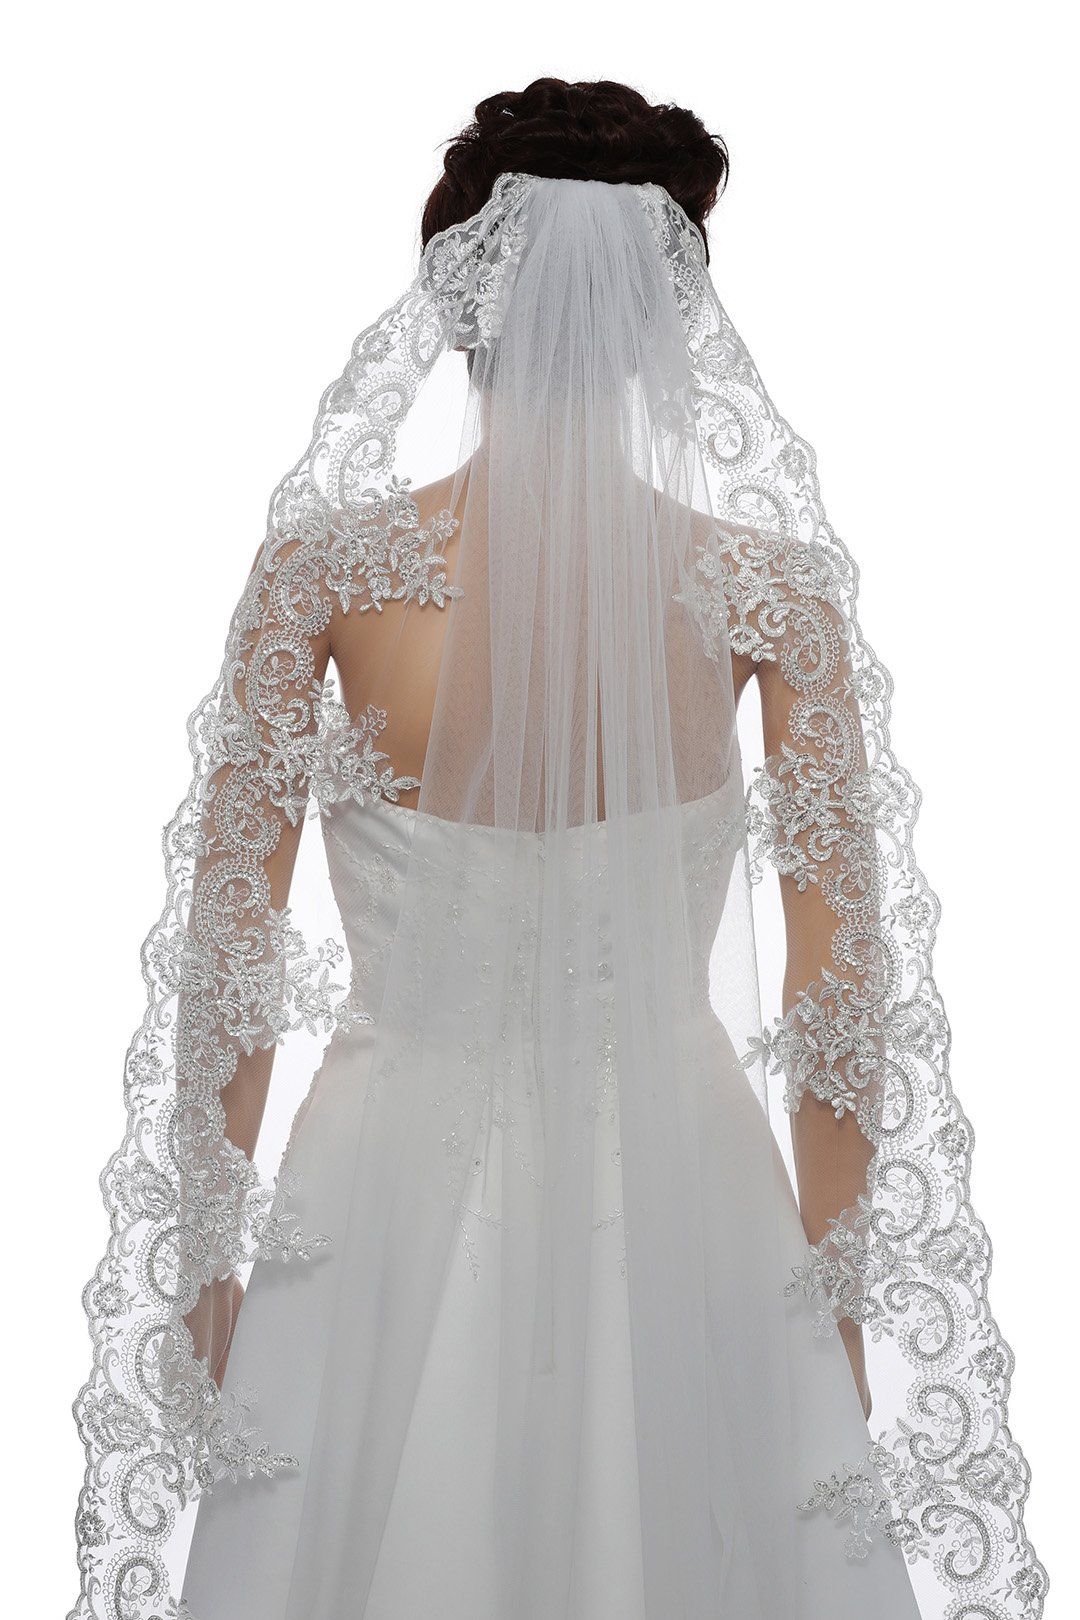 1T 1 Tier Georgeous 6'' Embroid Sequin Lace Veil - White Cathedral Length 108'' V446